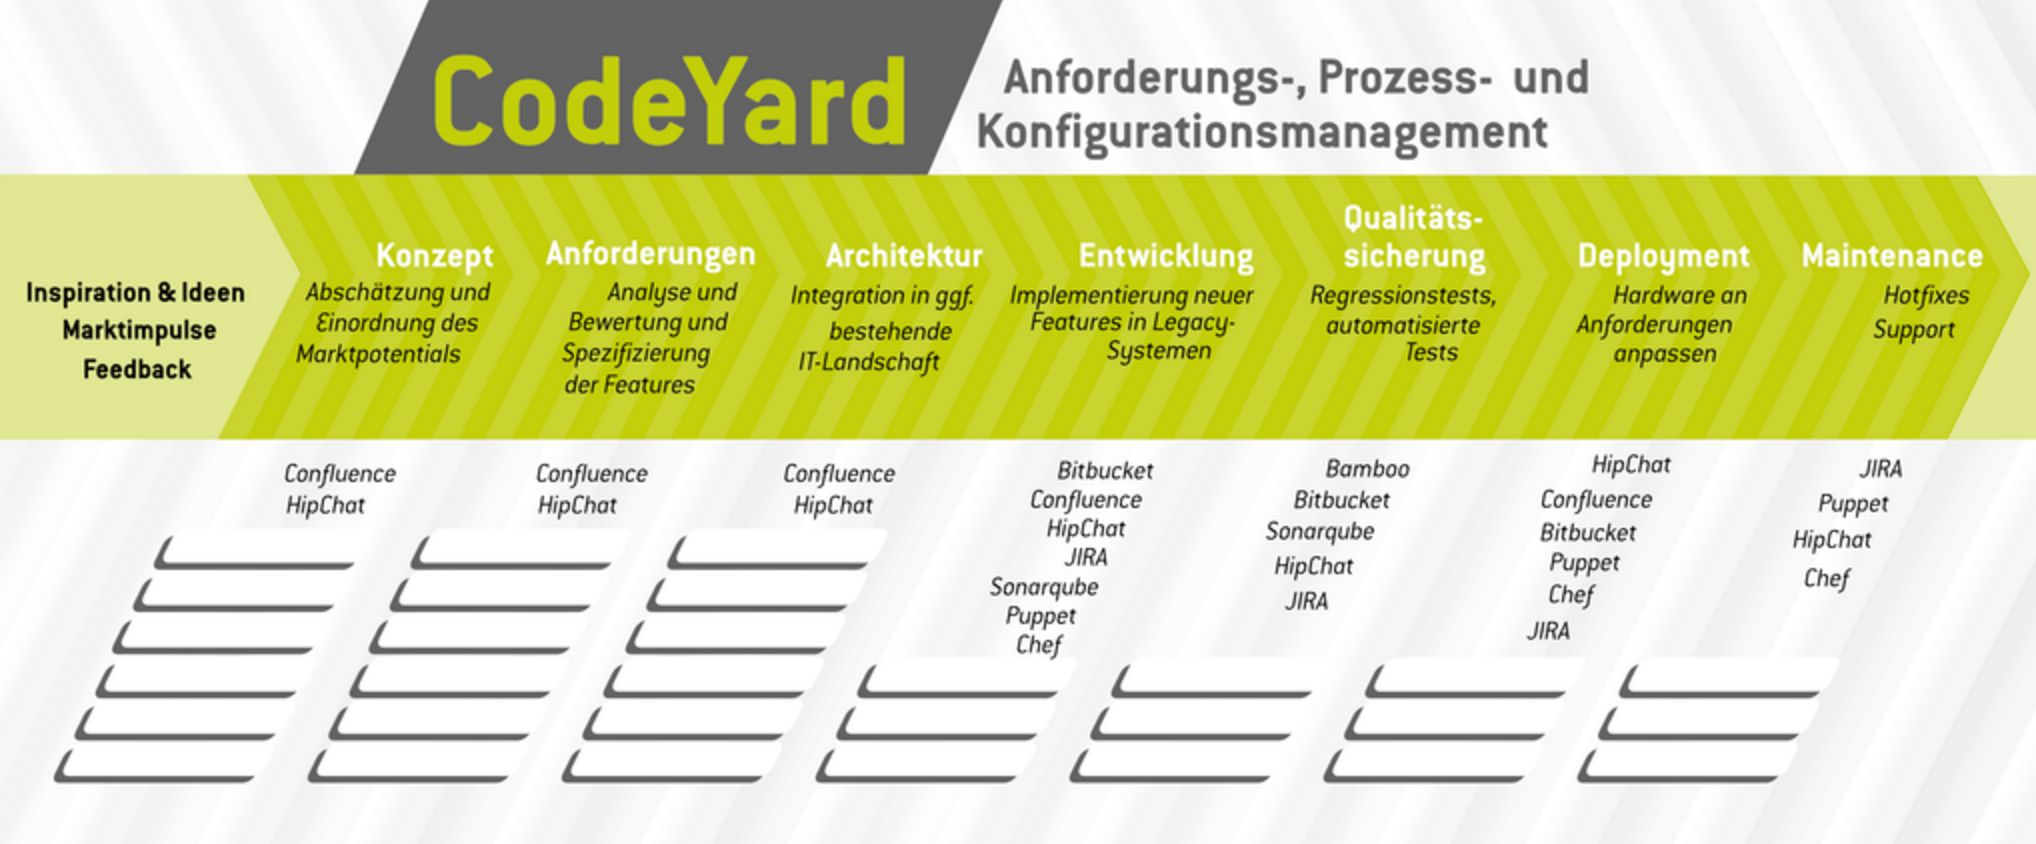 Codeyard Visualisierung